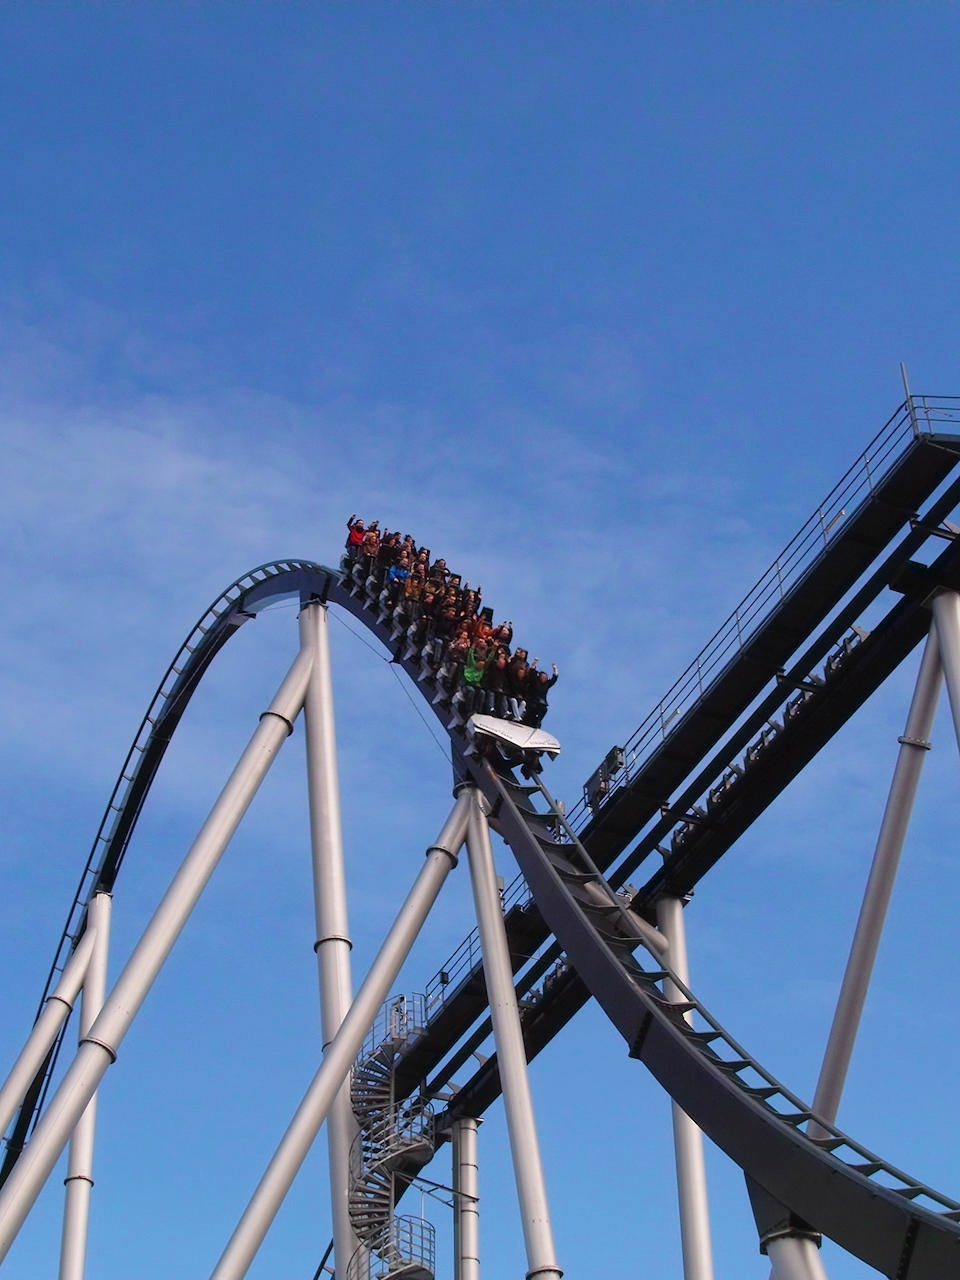 The Europapark - Germany's Biggest Leisure Park with Europa Park Rust Germany Map